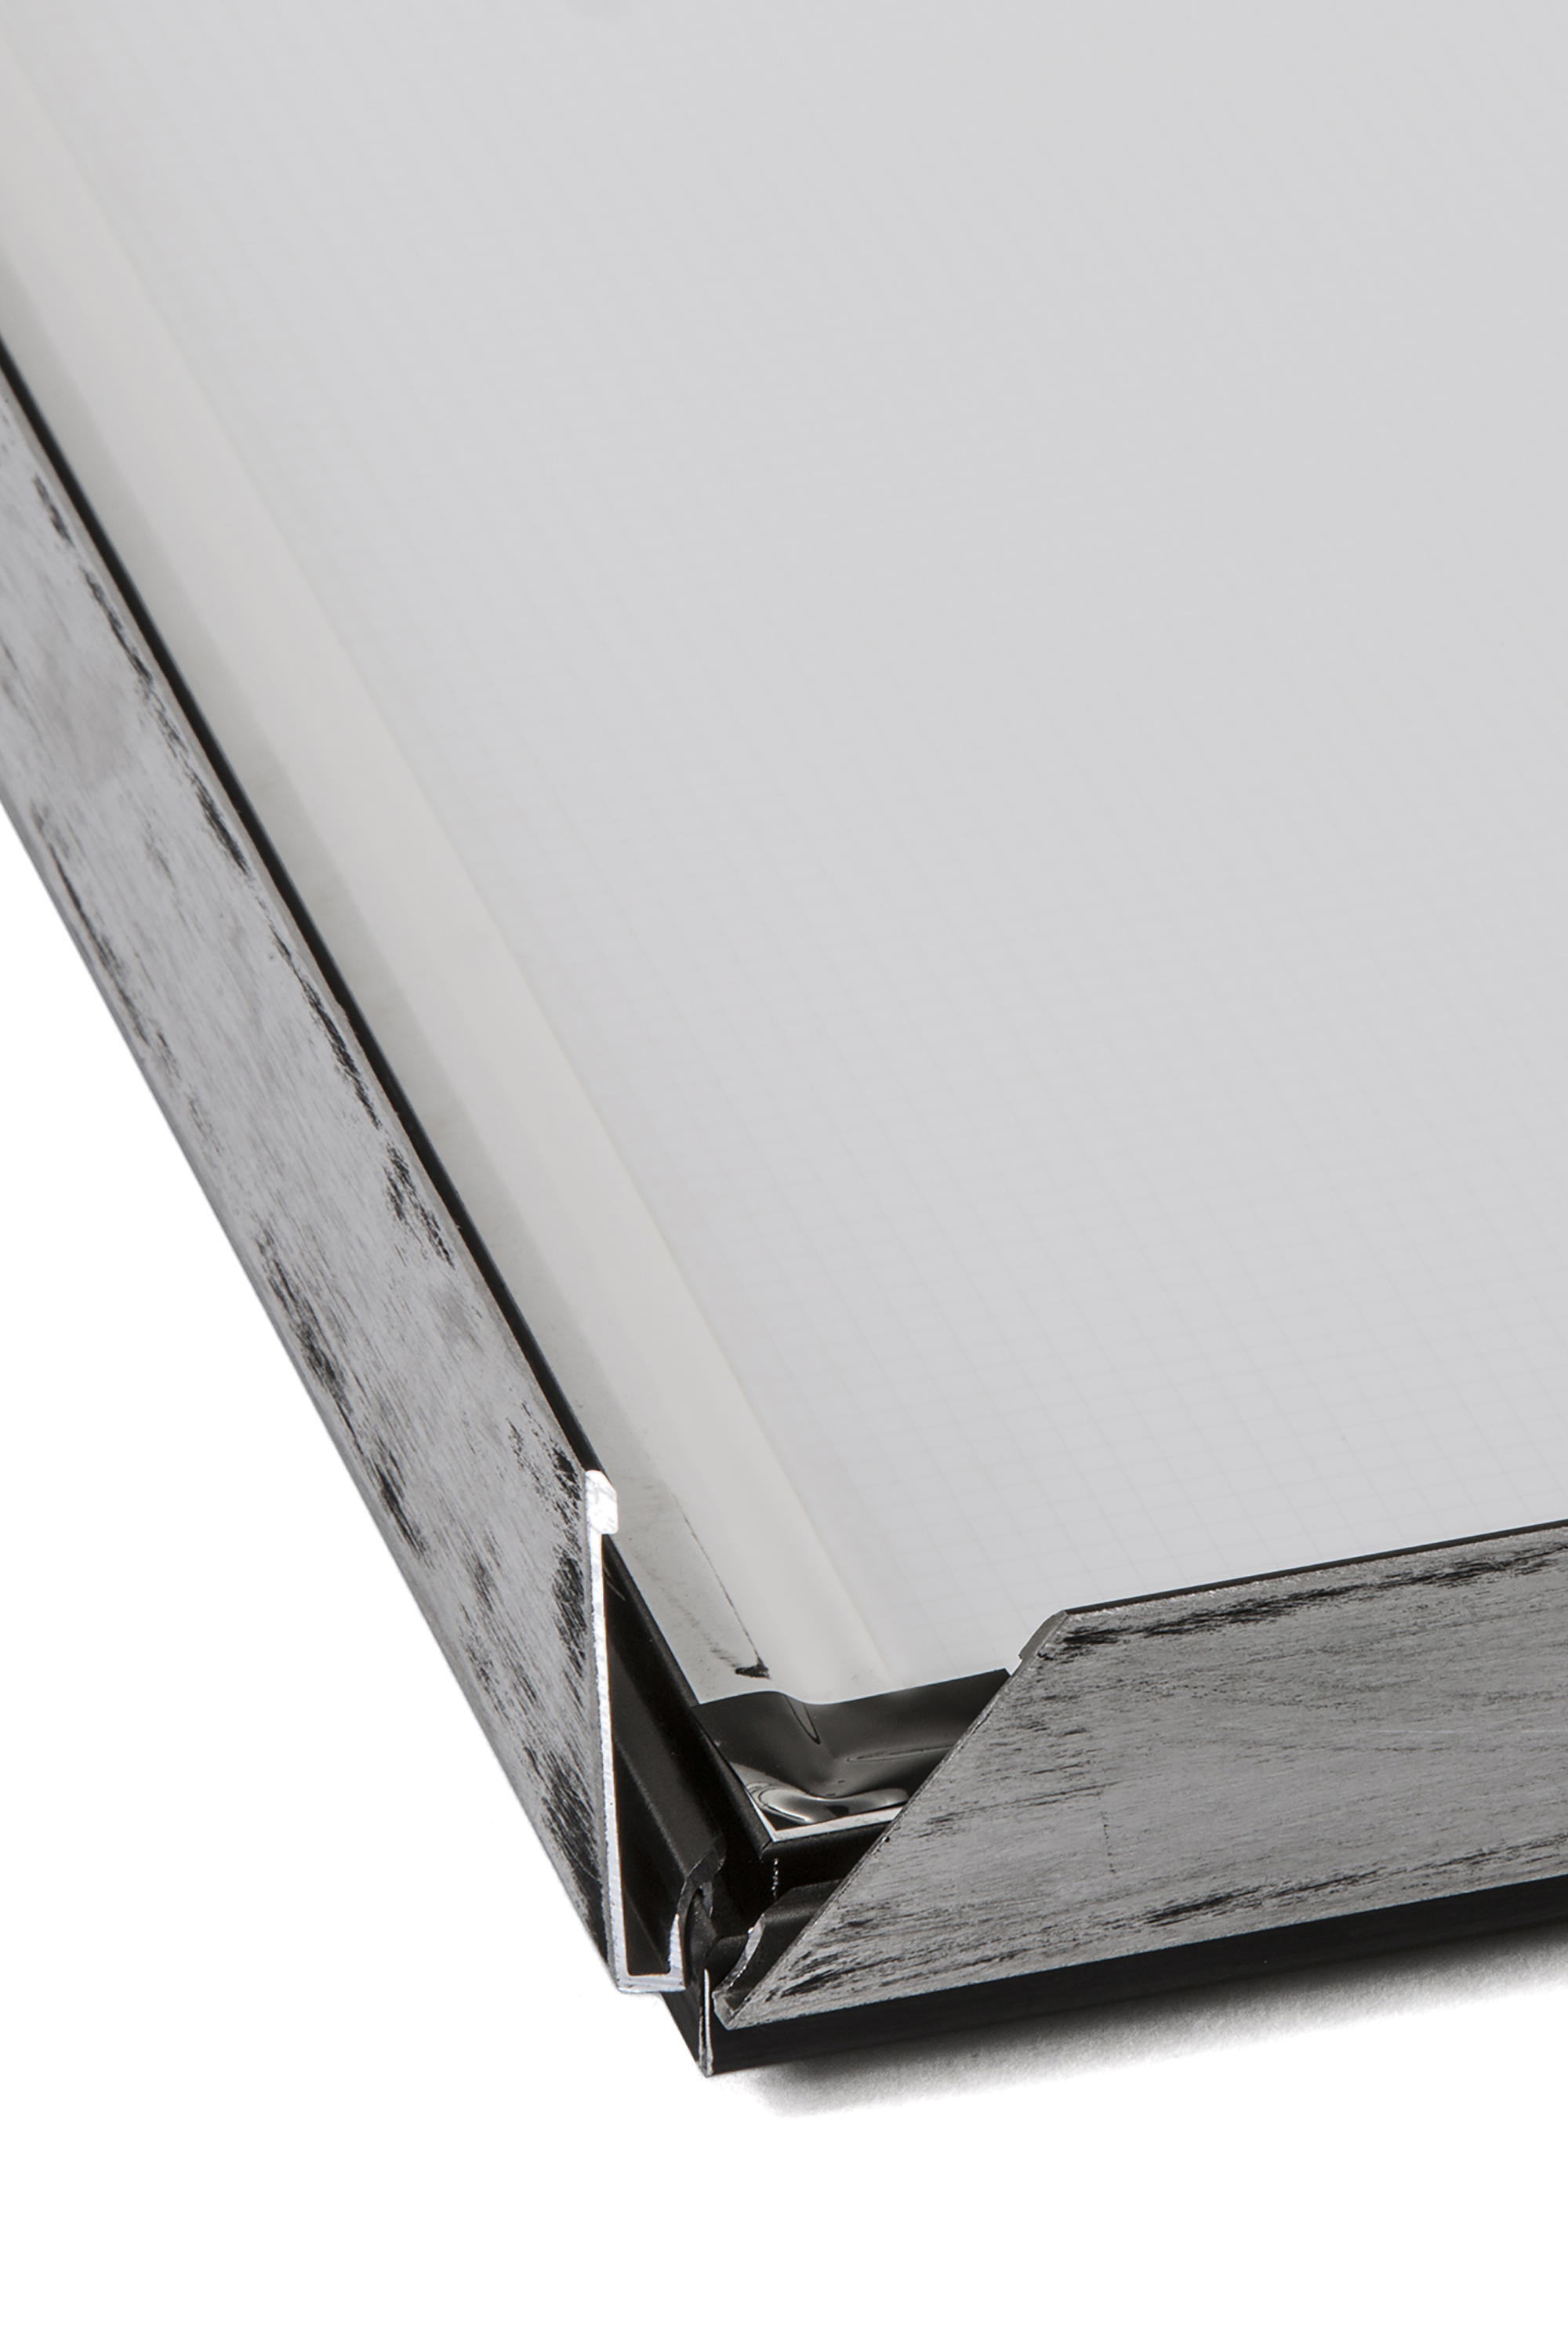 Diesel - 11002 FRAME IT!,  - Home Accessories - Image 4